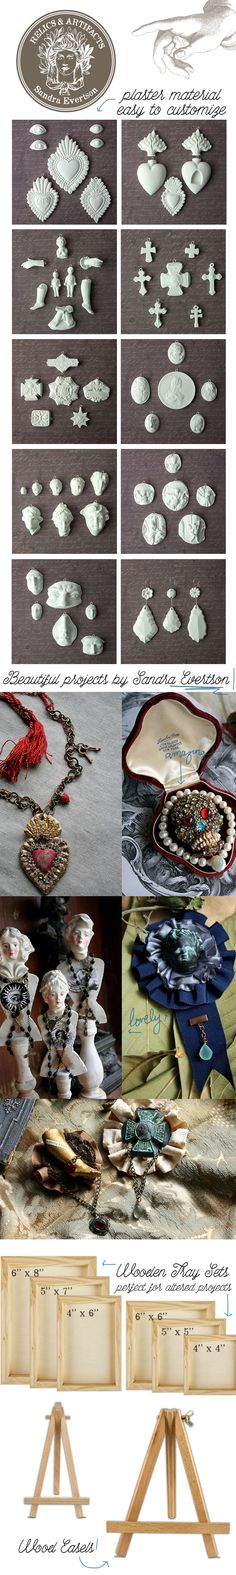 """I added """"Prima Relics/Artifacts"""" to an #inlinkz linkup!http://prima.typepad.com/prima/2015/01/introducing-relics-artifacts.html"""